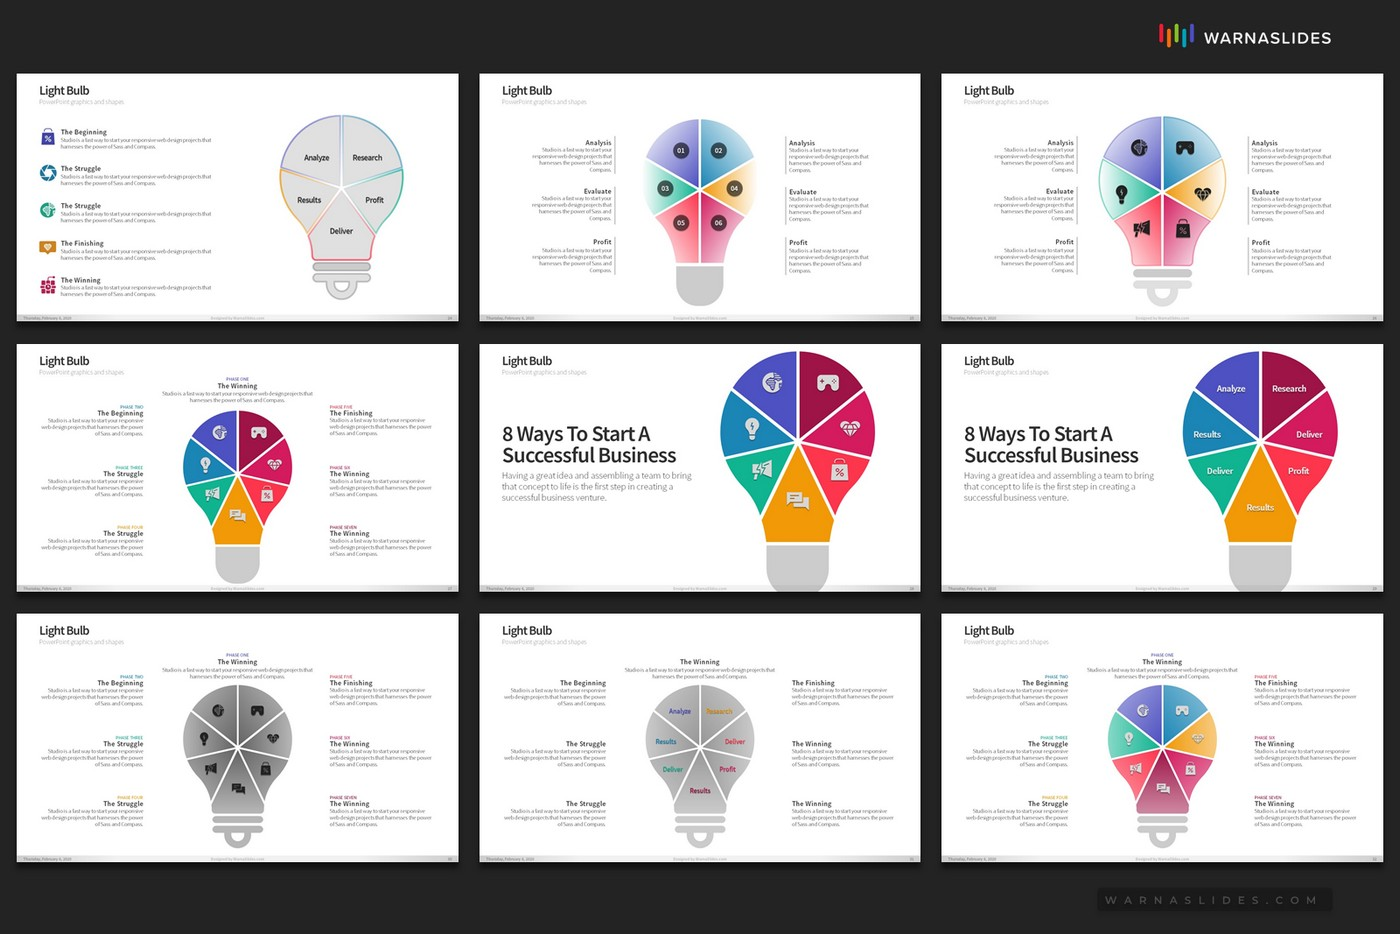 Light-Bulb-Ideas-PowerPoint-Template-for-Business-Pitch-Deck-Professional-Creative-PowerPoint-Icons-009